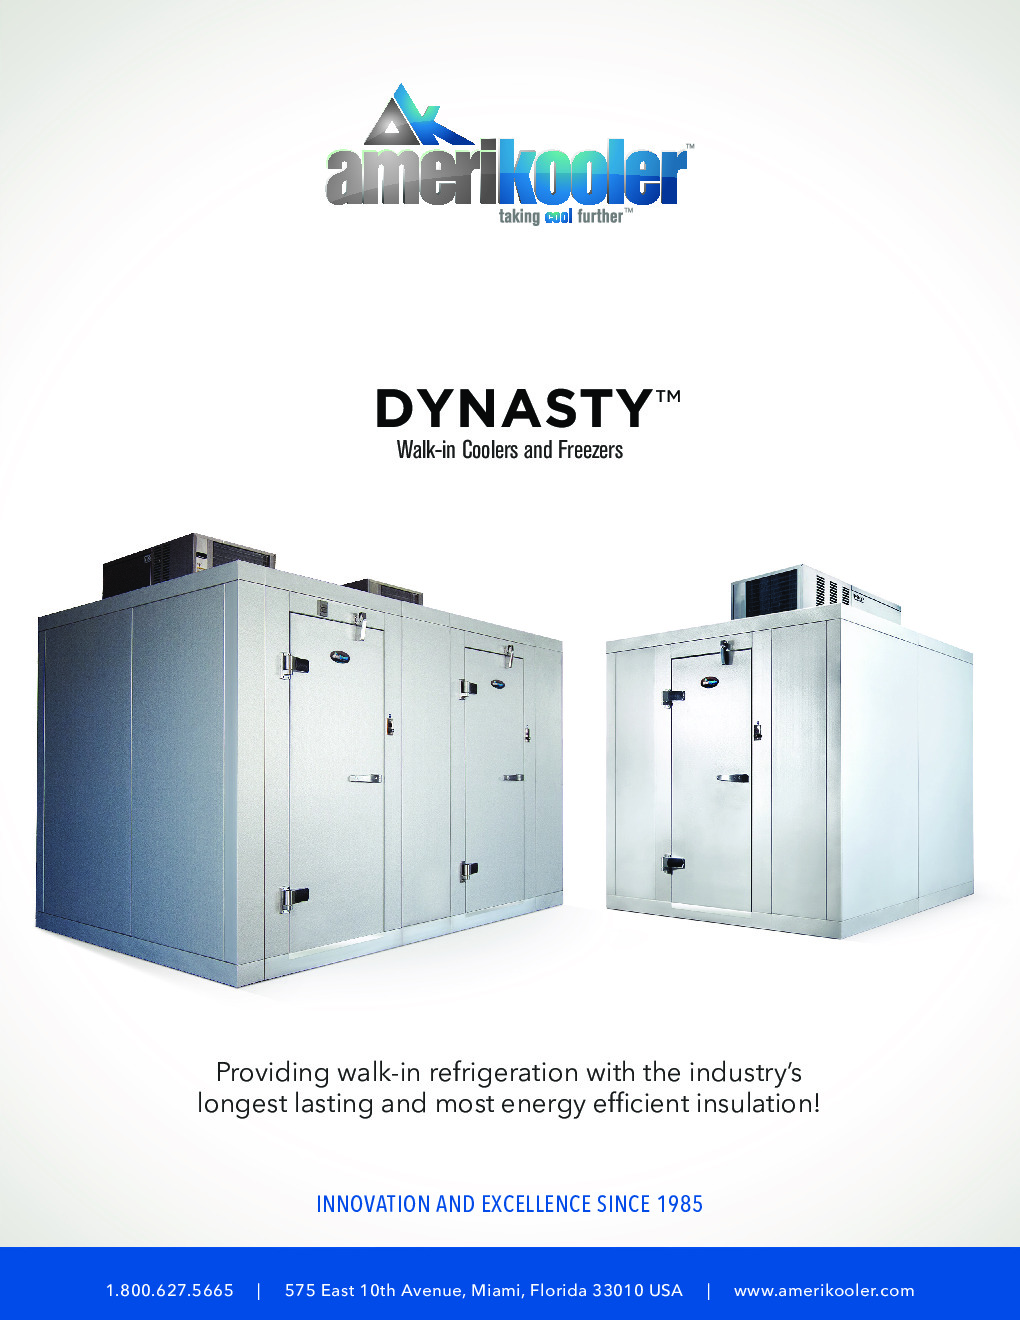 AmeriKooler DW081277N-6/6-RM 8' X 12' Walk-In Cooler, 6' L Cooler without Floor and 6' L Freezer, Remote